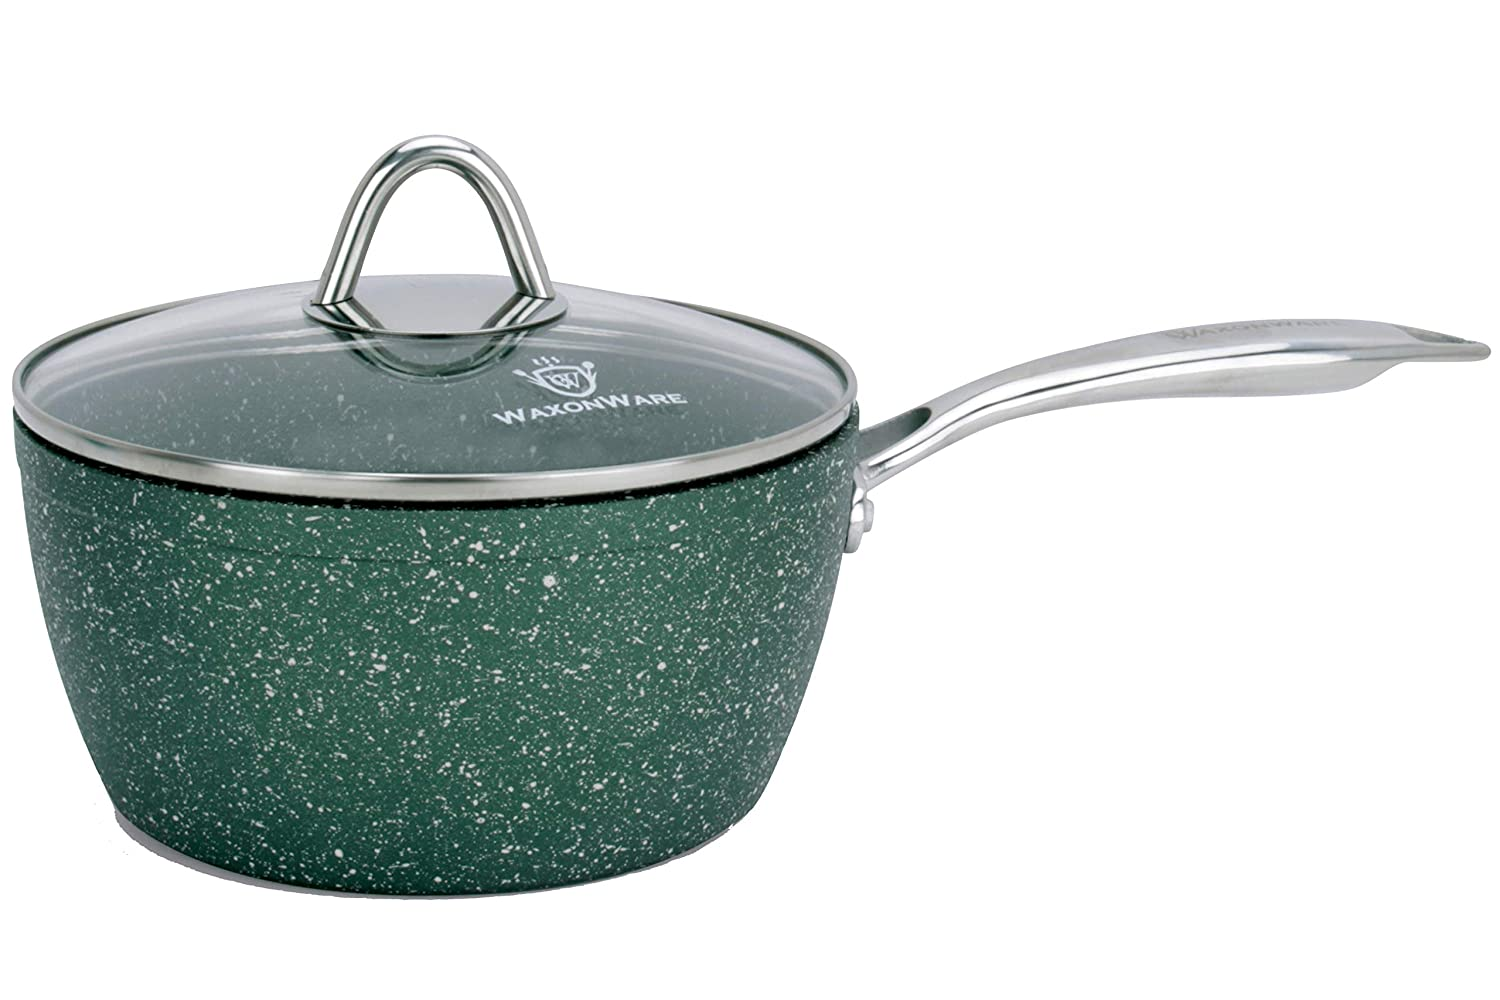 WaxonWare 2.5 Quart Stone Nonstick Saucepan With Glass Lid, Scratch Resistant Non Toxic APEO PFOA Free Nonstick Cookware Cooking Pot, Induction Compatible, Dishwasher & Oven Safe (EMERALD Series)